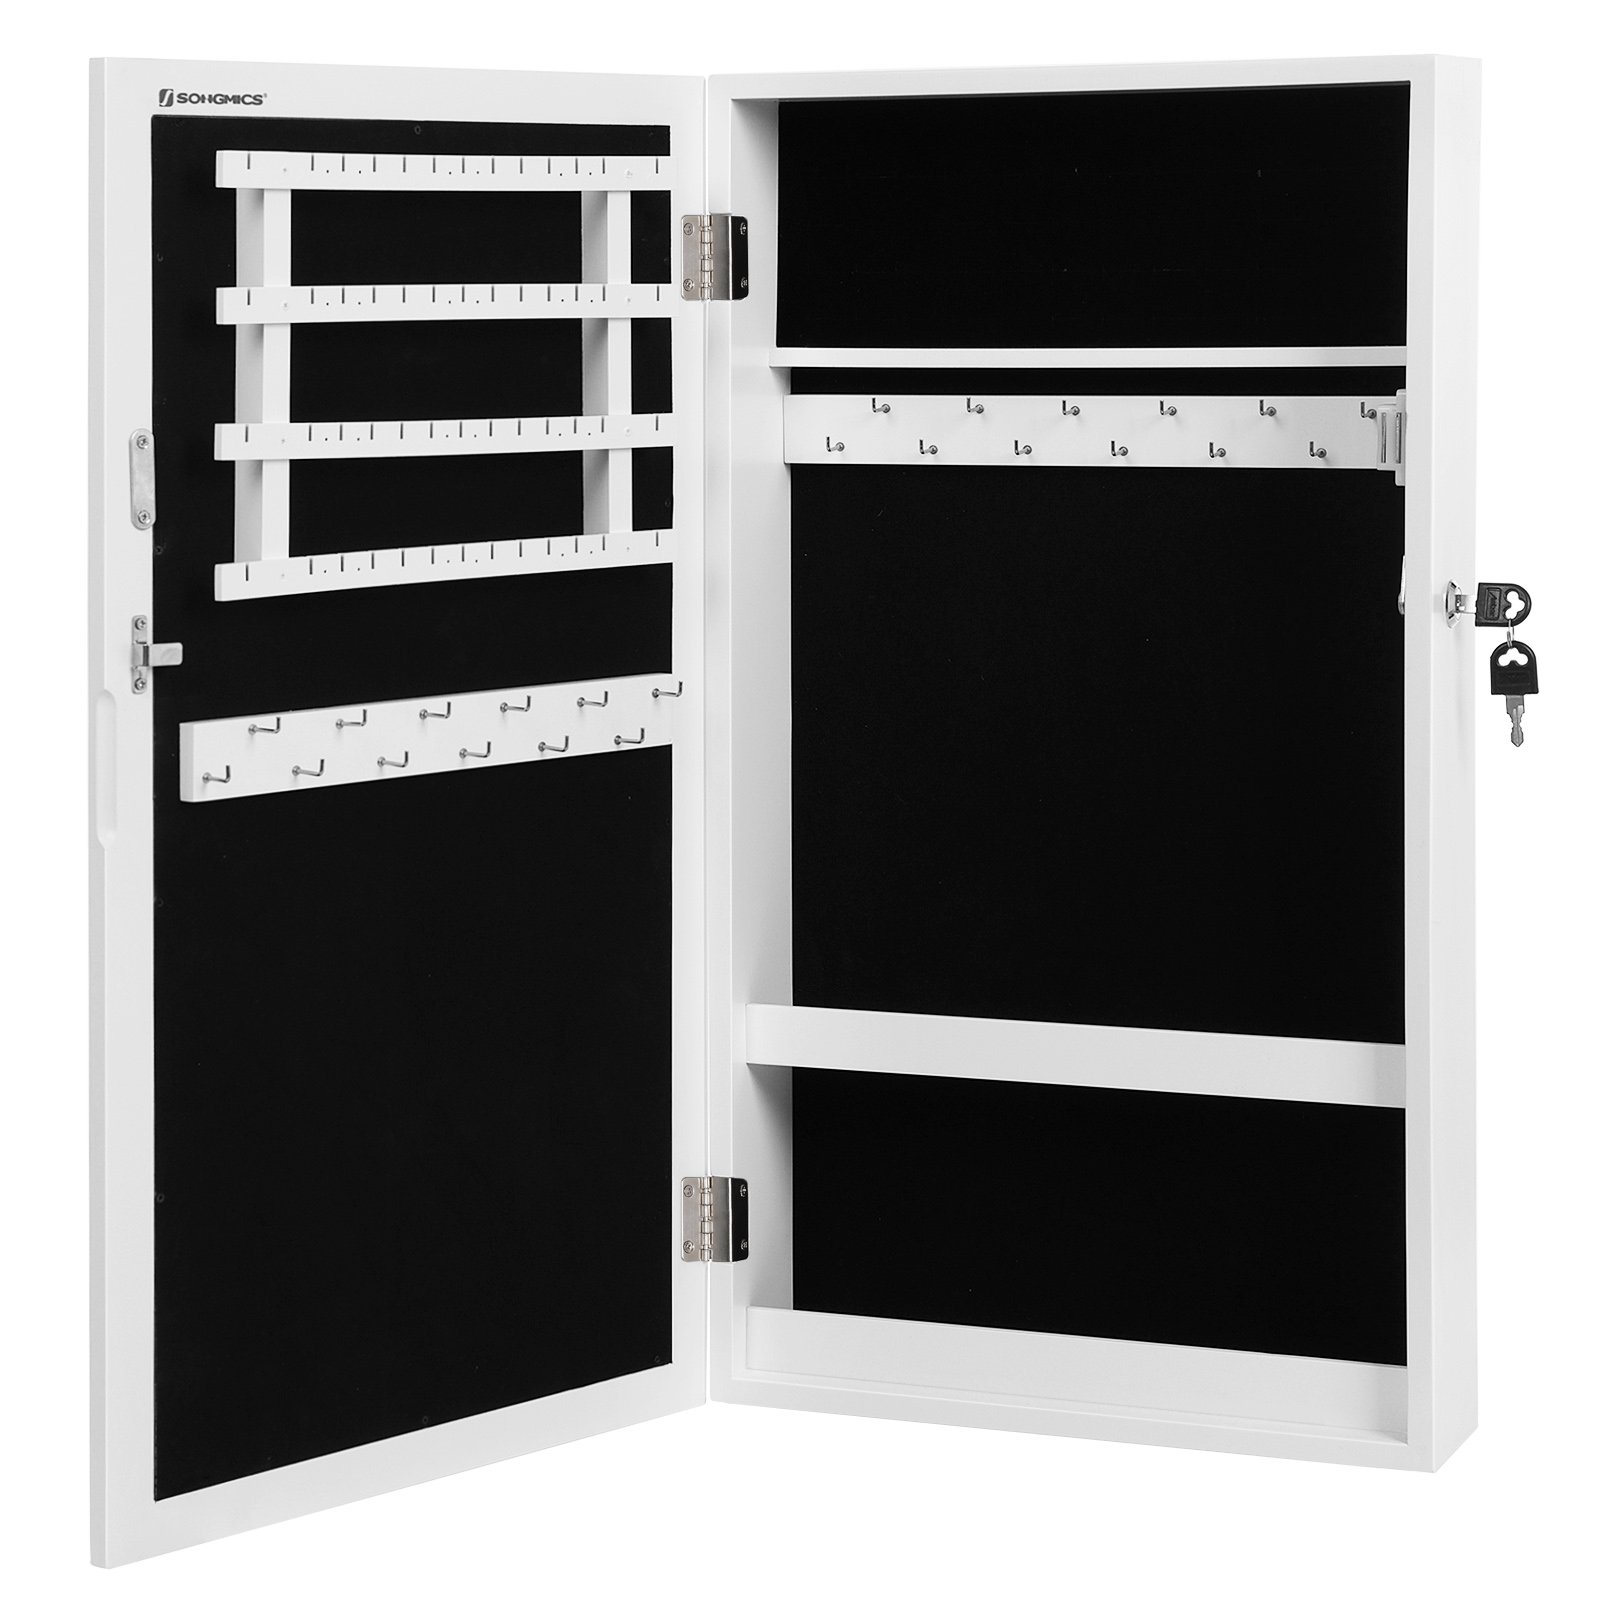 SONGMICS Lockable Jewelry Cabinet Armoire with Mirror, Wall-Mounted Space Saving Jewelry Storage Organizer White UJJC51WT by SONGMICS (Image #8)